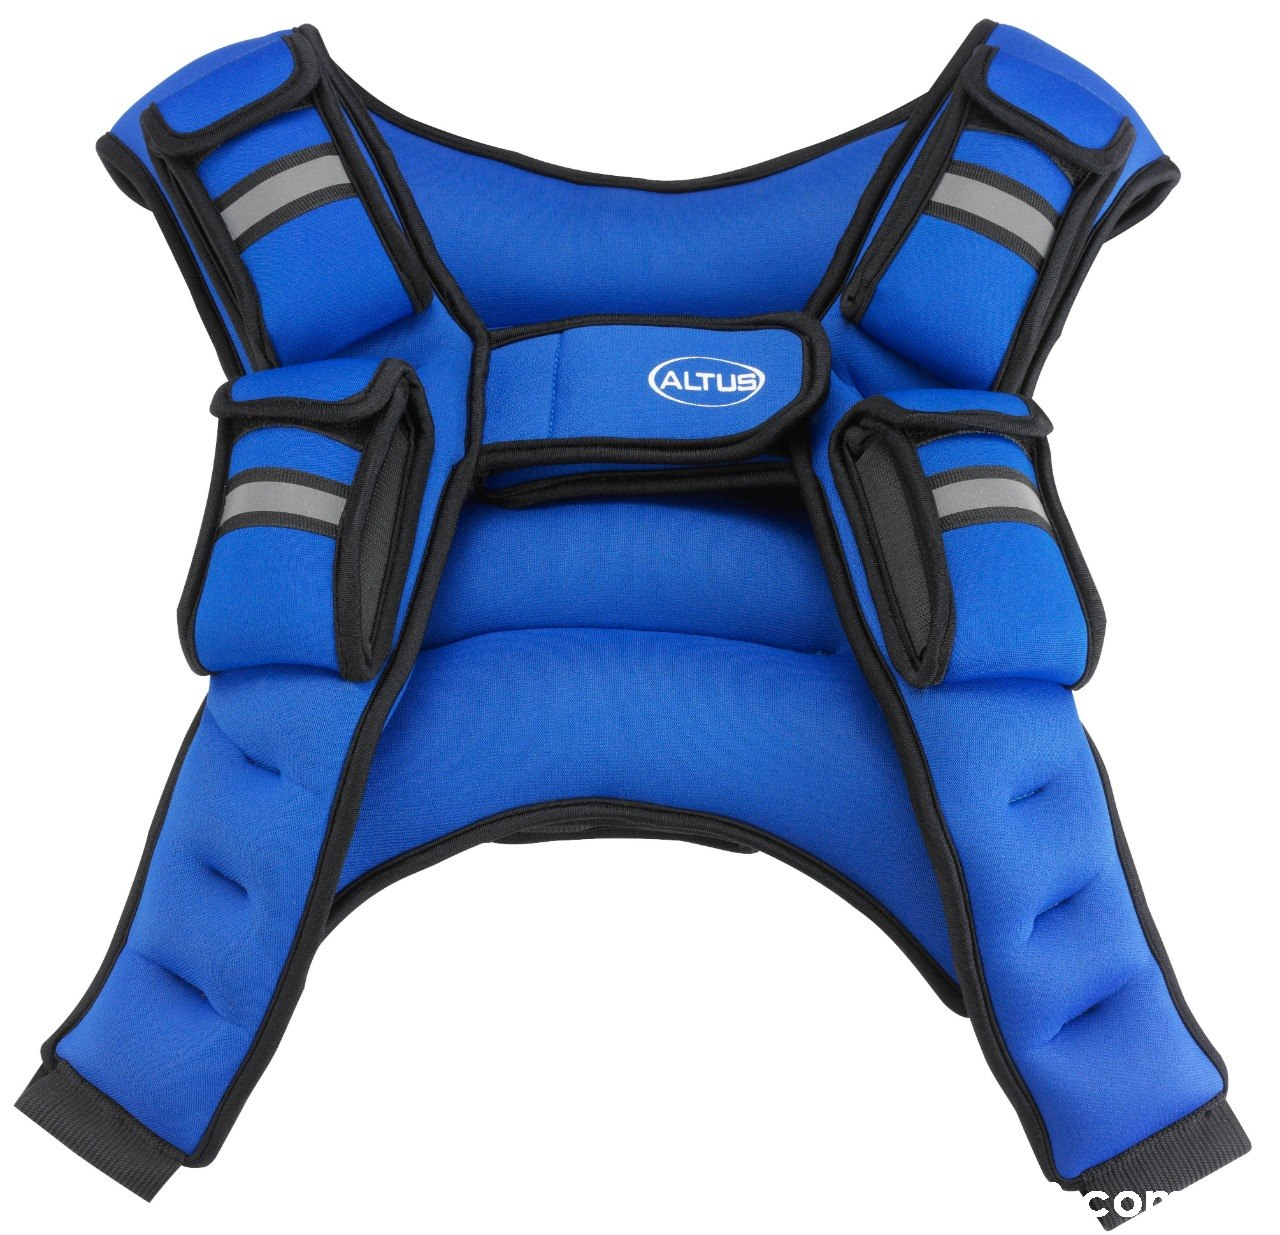 ALTUS  Sports gear,Blue,Cobalt blue,Personal protective equipment,Baseball protective gear